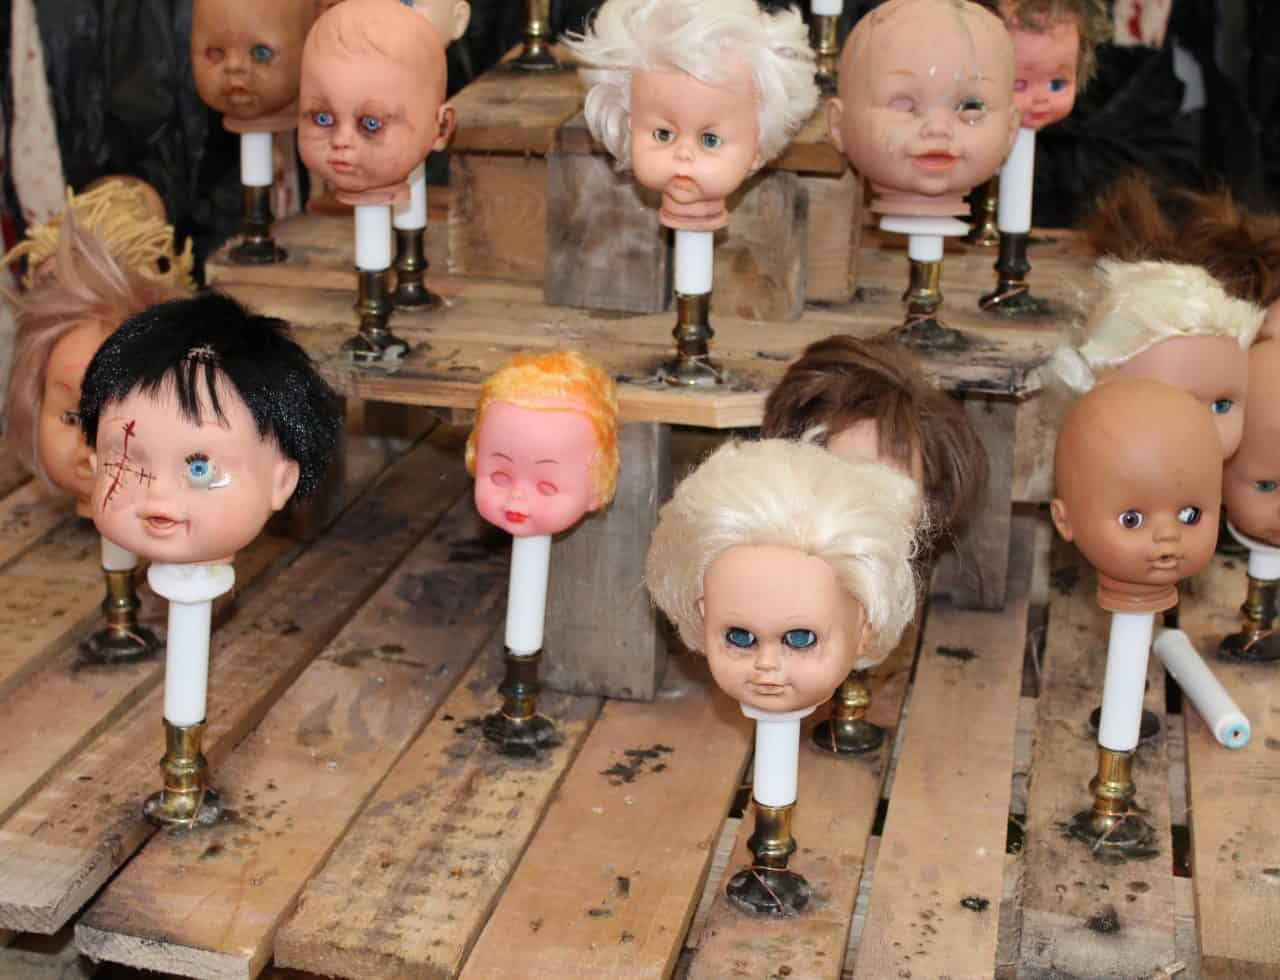 Bespoke Halloween Doll Props we created for our client's American Horror story Horror themed event.